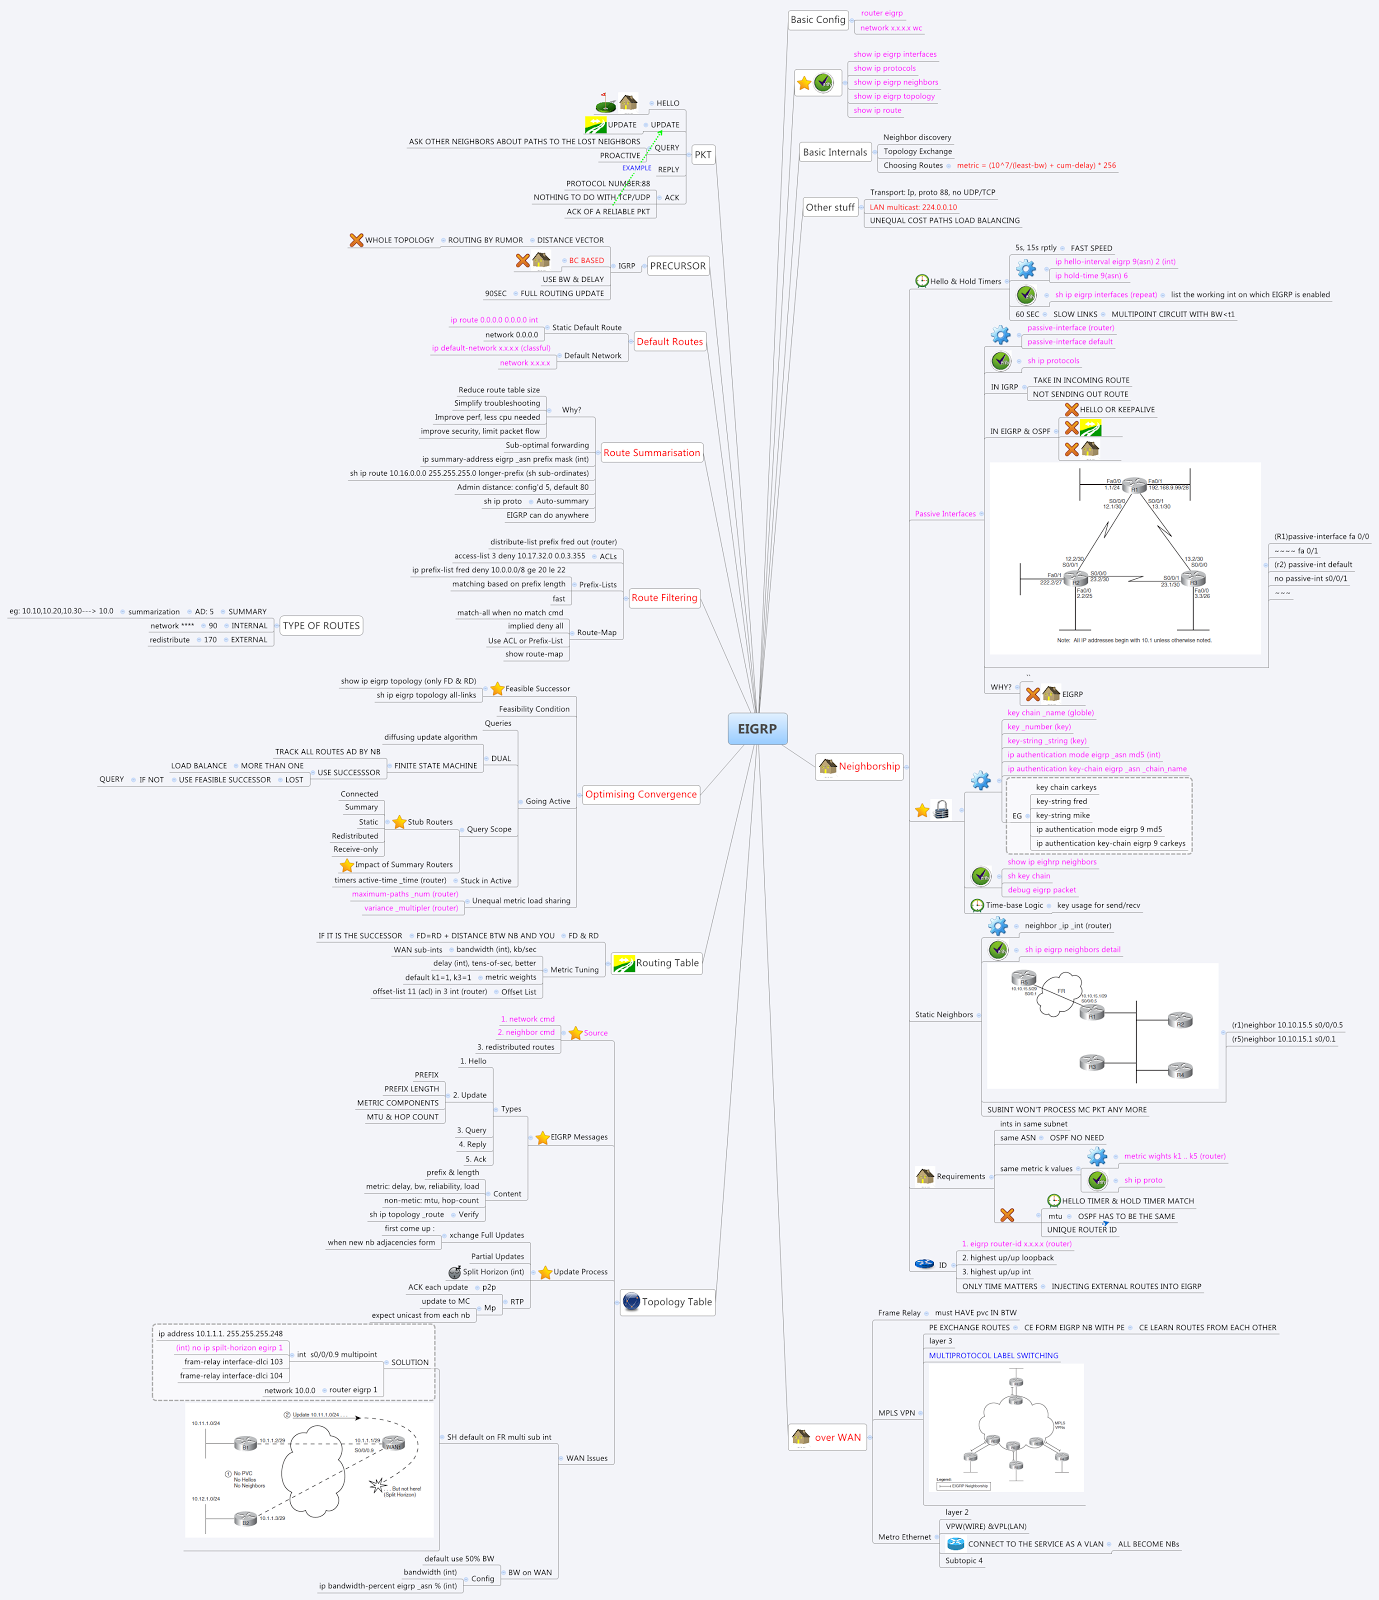 Ccnp exam preparation a mindmap about eigrp for ccnp study this mind map is based on the ccnp study guide leave a comment if you need the original xmind file pooptronica Choice Image